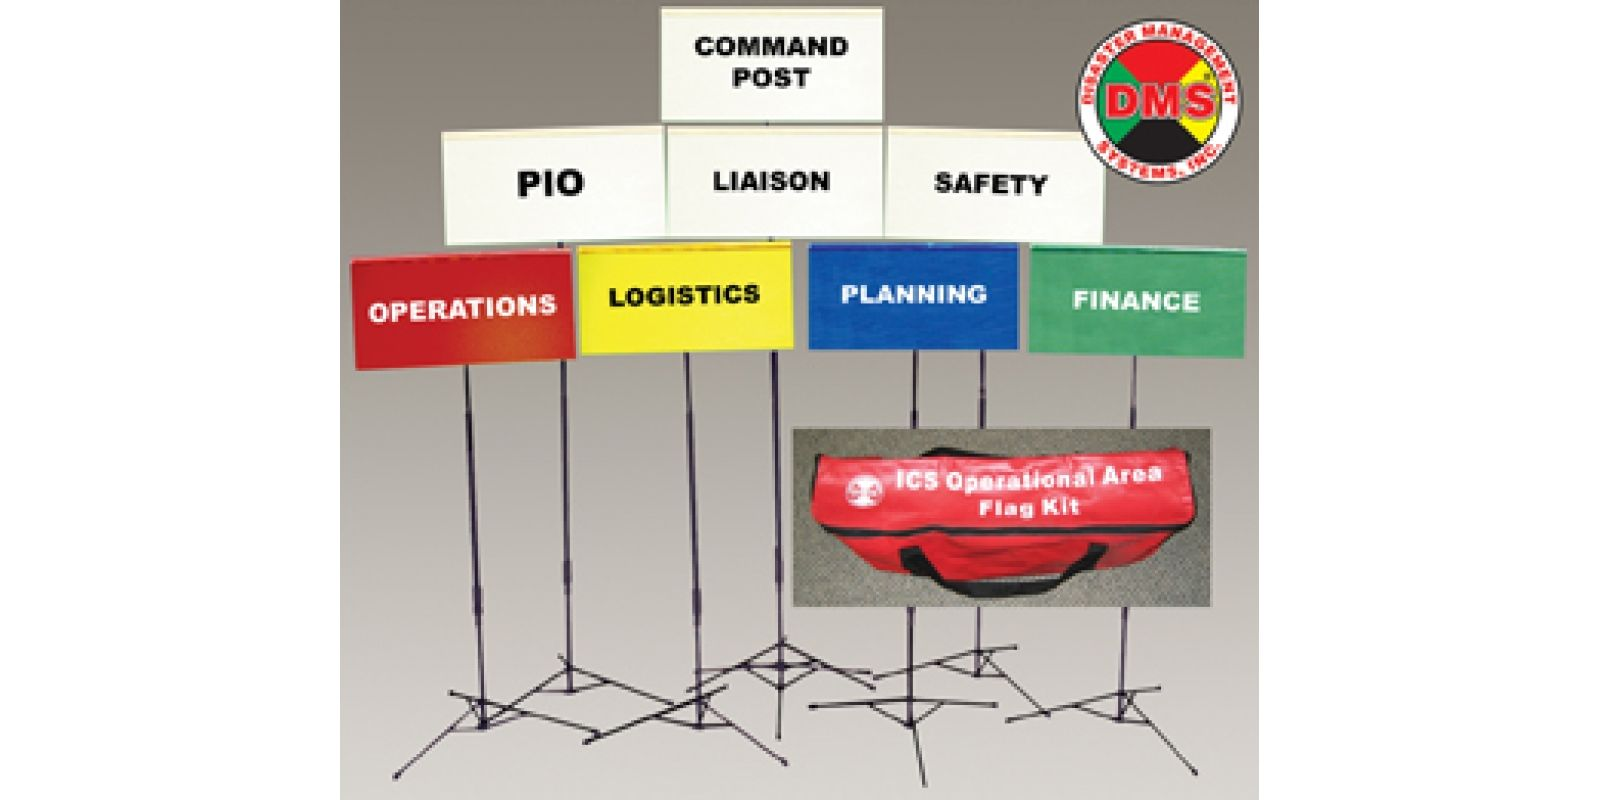 Incident Command System Flag Kit It Is Set Forth In The